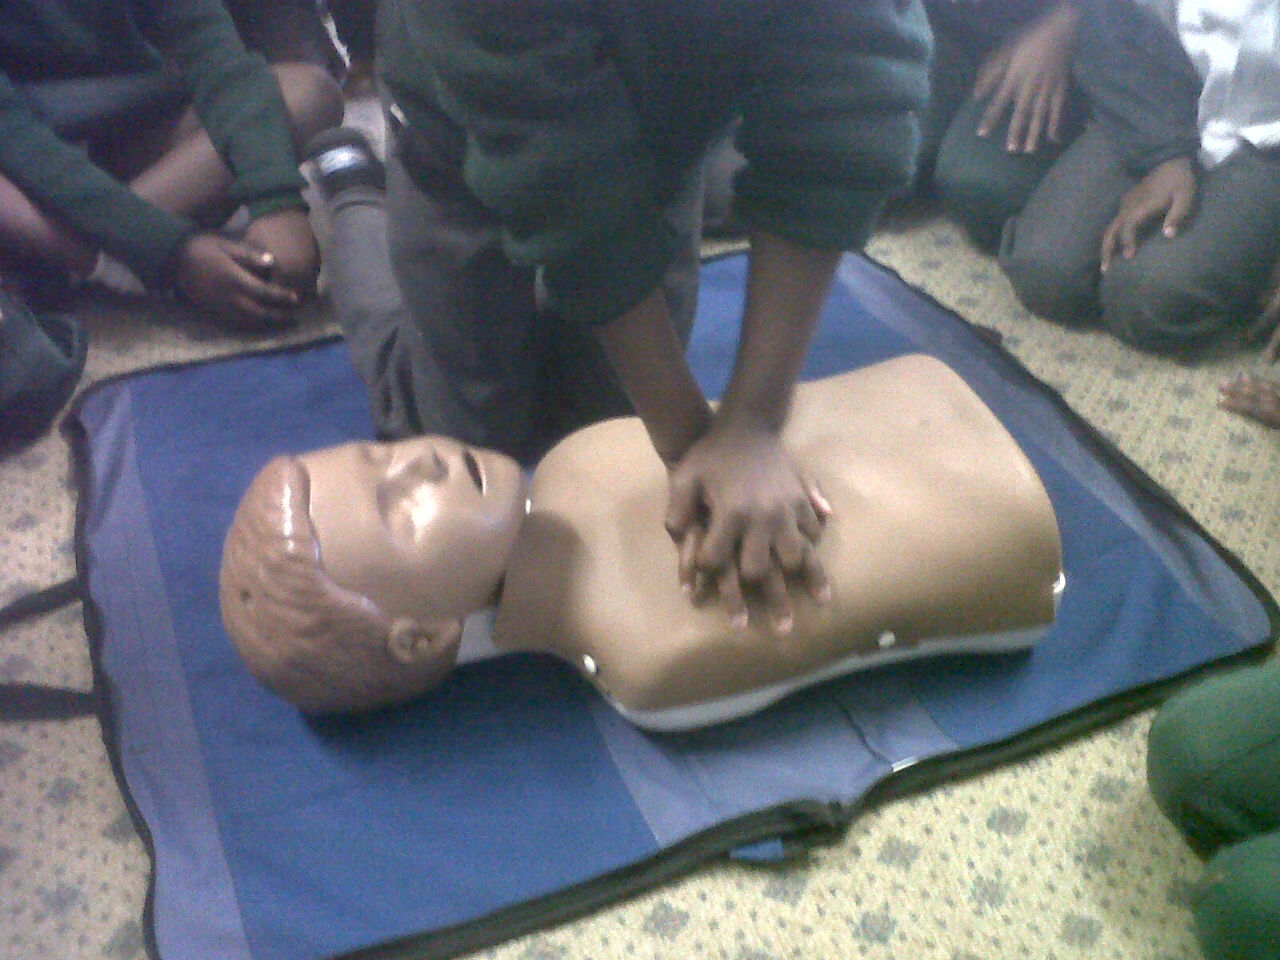 The best part of the lesson ... Hands-On CPR.